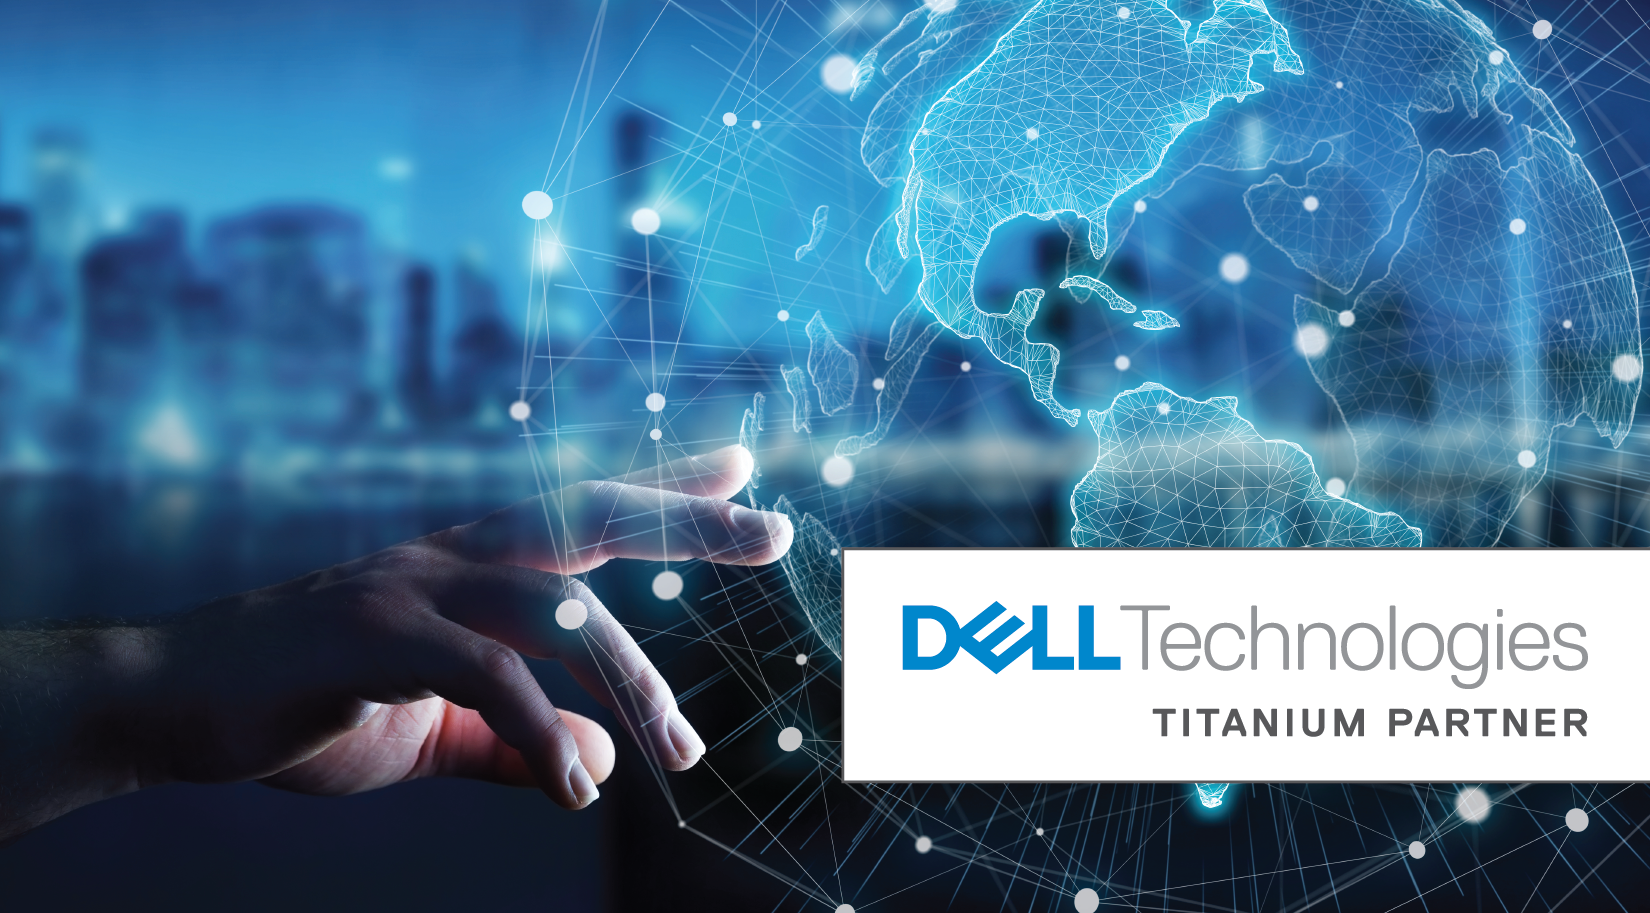 Accelerating TBS growth via our Dell Technologies Partnership